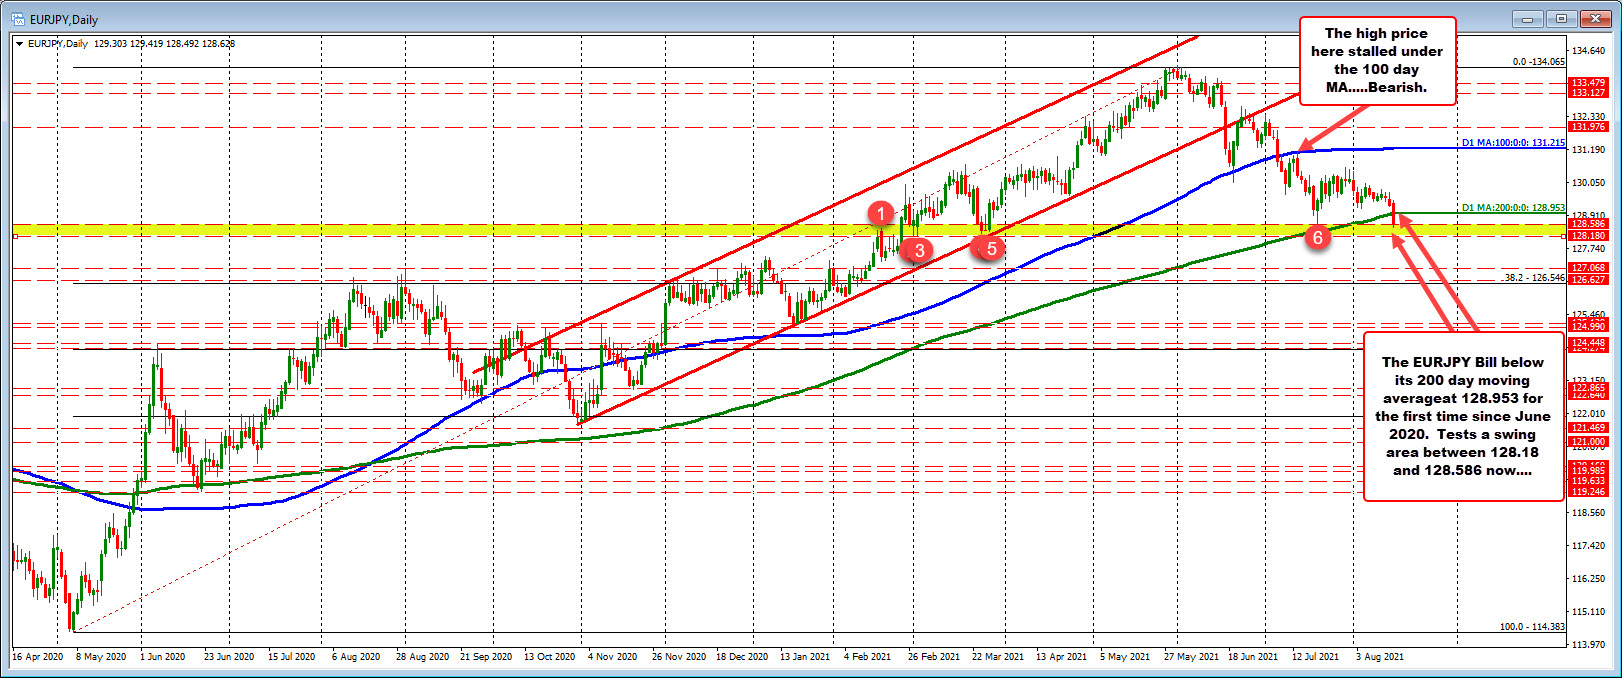 Price of the EURJPY breaks below the 200 day MA for the first time since June 22, 2020